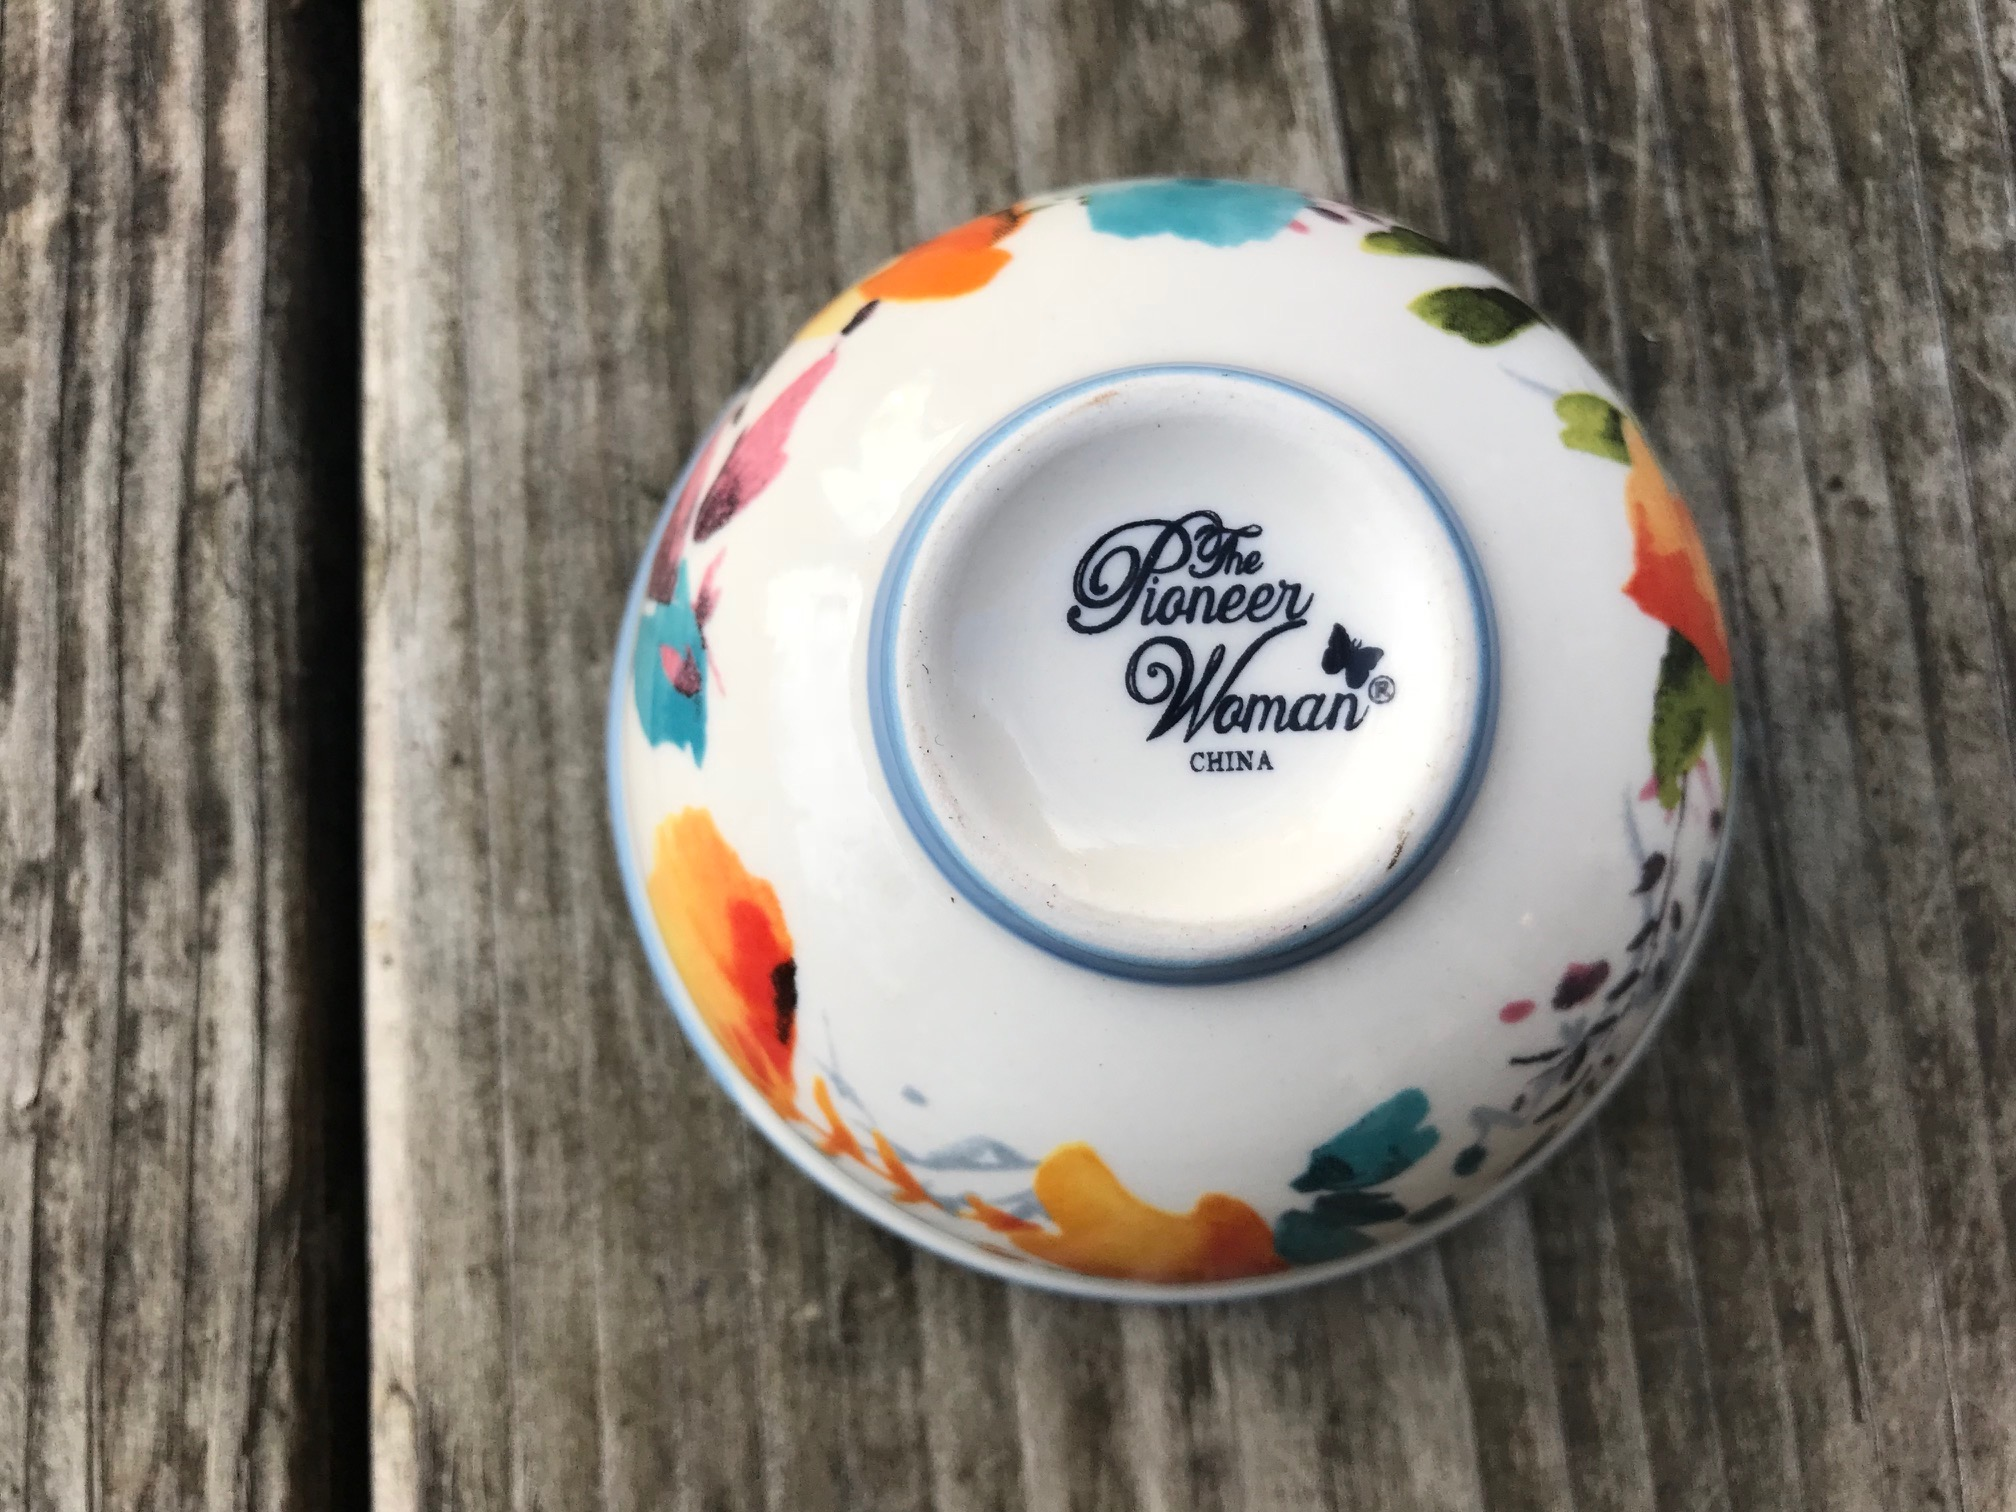 Pioneer Woman Willow Pattern Dipping Bowl: as high as 1,858 ppm Lead